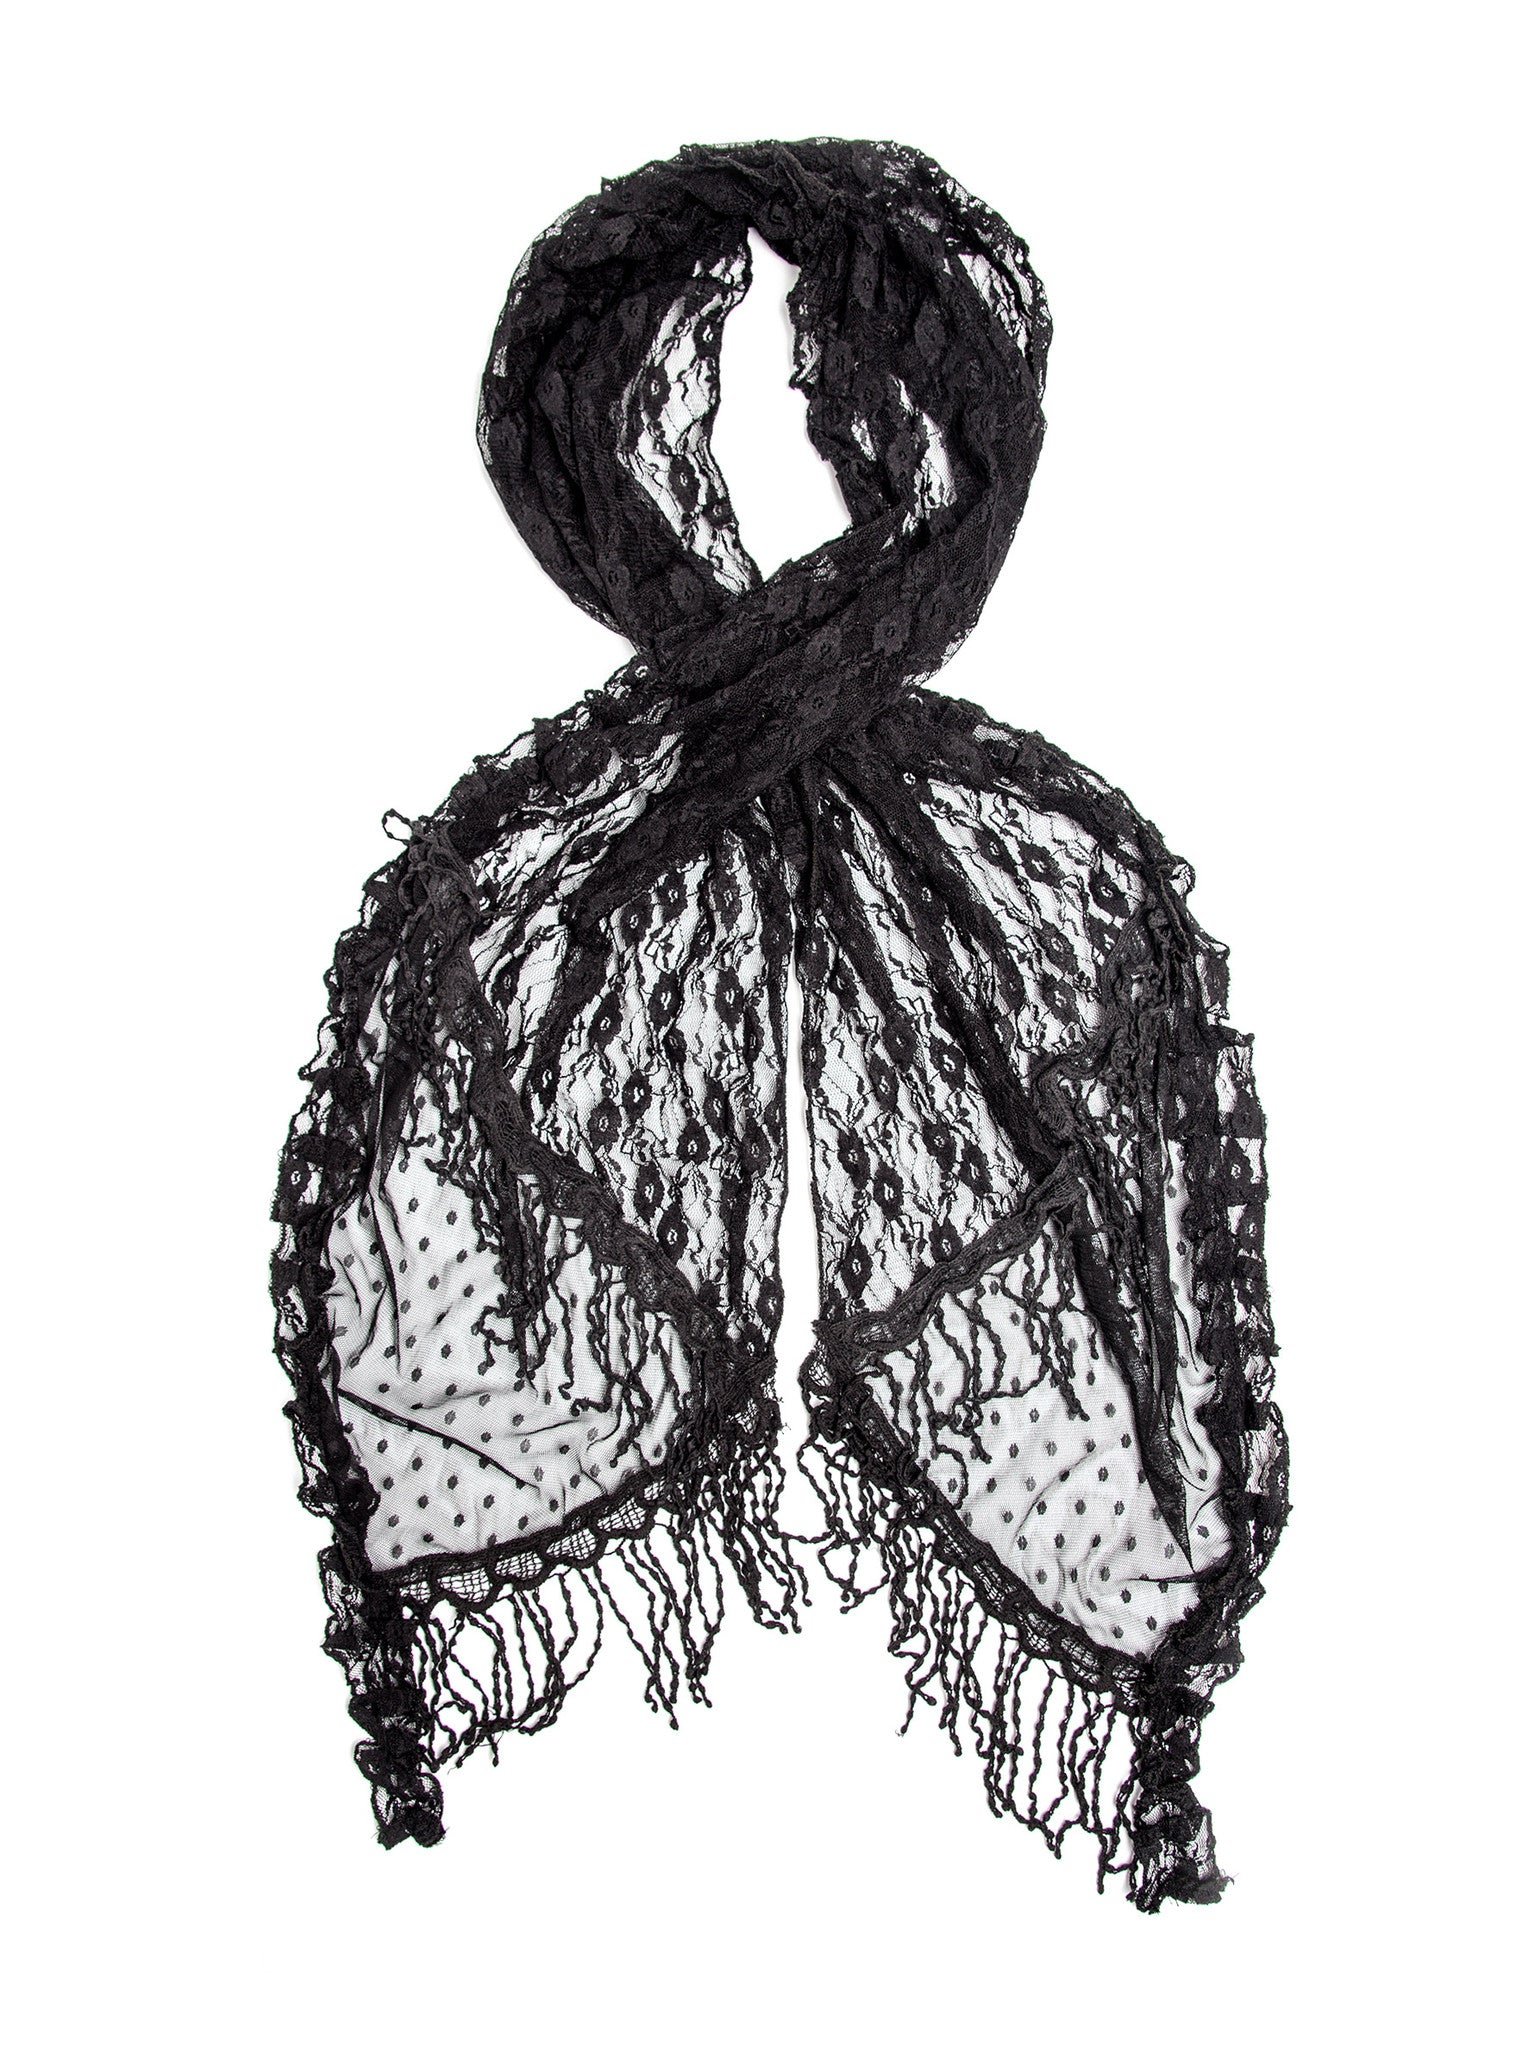 Scarves - Elise Scarf, Vintage Inspired Lace Scarf, Long Crochet Trim -(Black / One Size) Bohomonde  - 3